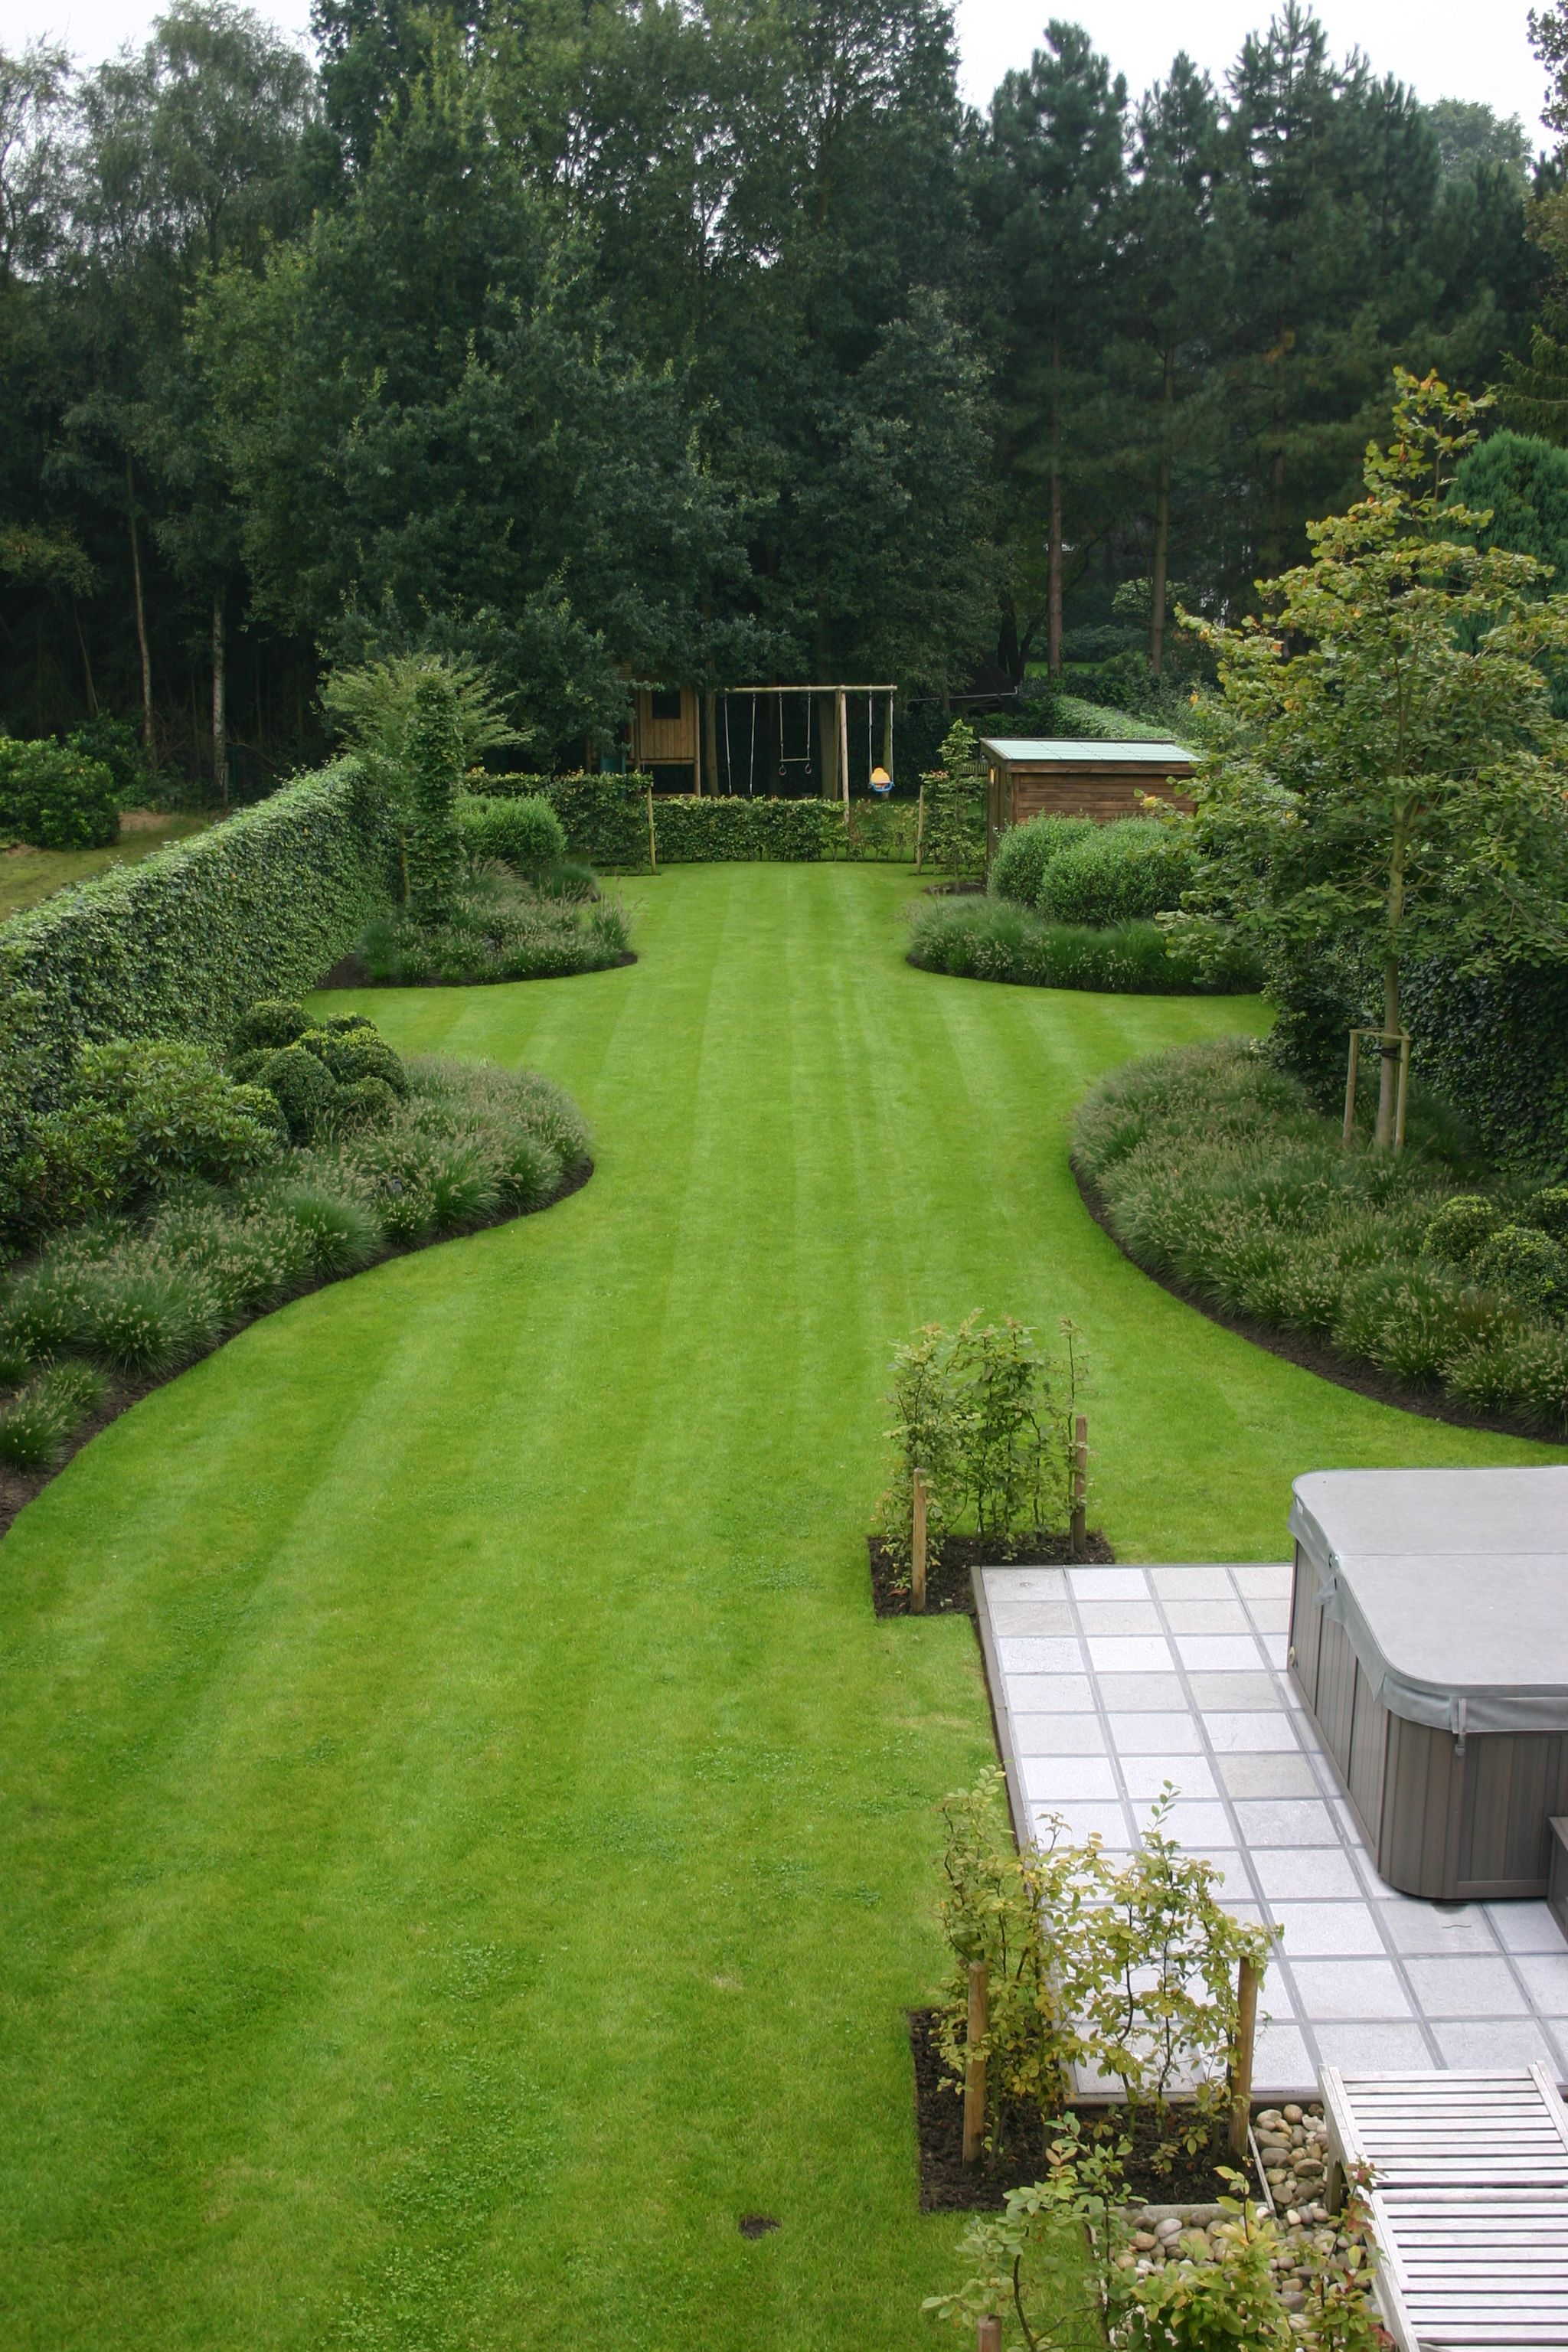 Philippe Haseldonckx Tuinarchitectuur Aanleg Tuin In Brasschaat Large Backyard Landscaping Front Yard Landscaping Yard Landscaping Large backyard landscaping ideas with pool